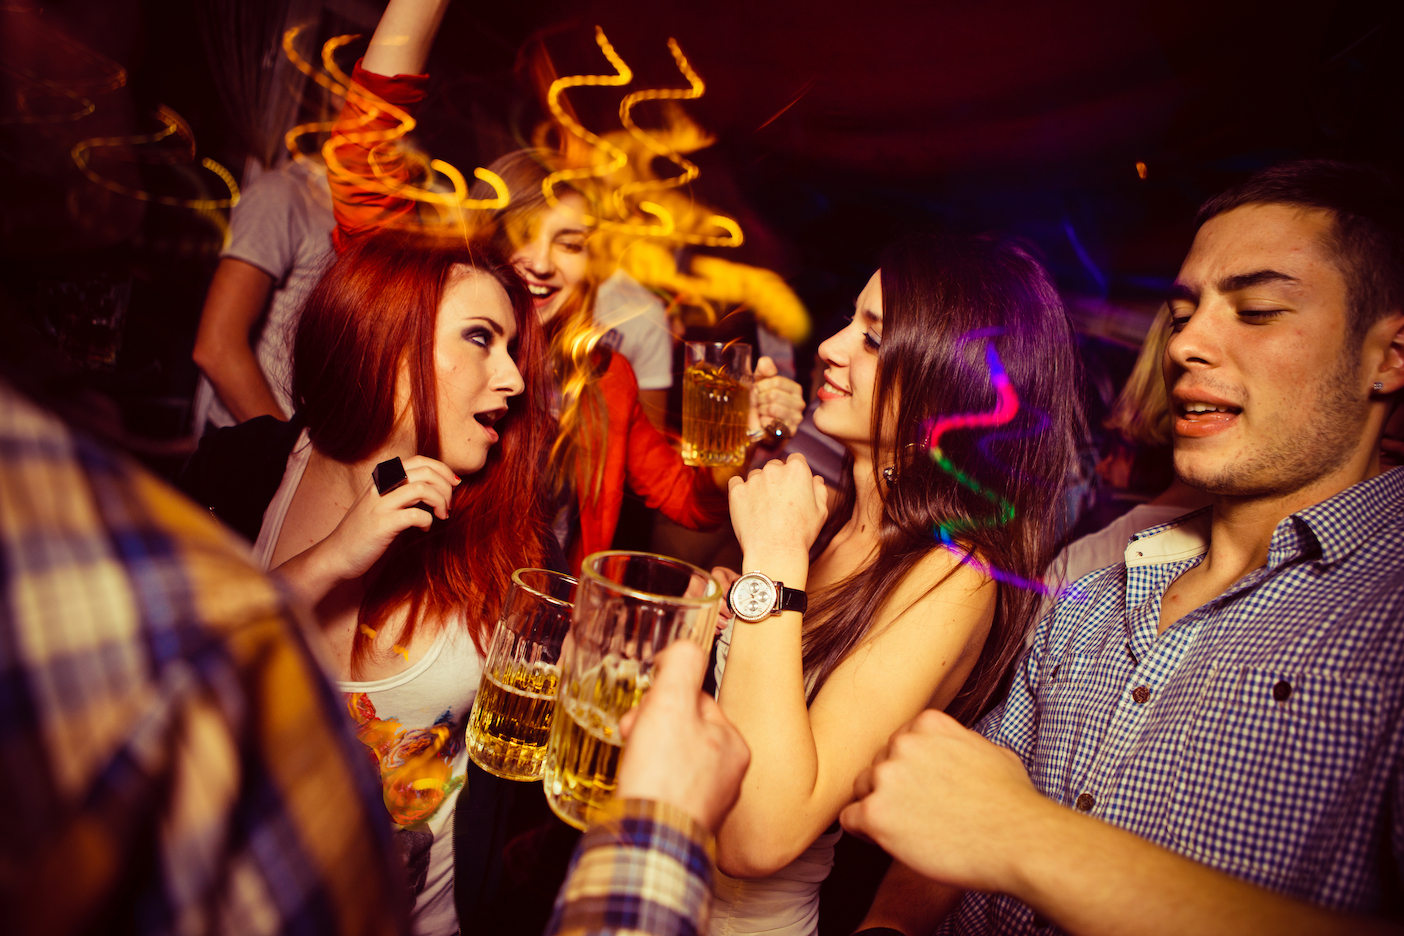 Experts are reporting that teenage girls who binge drink on a frequent basis may fail to reach their peak bone mass.